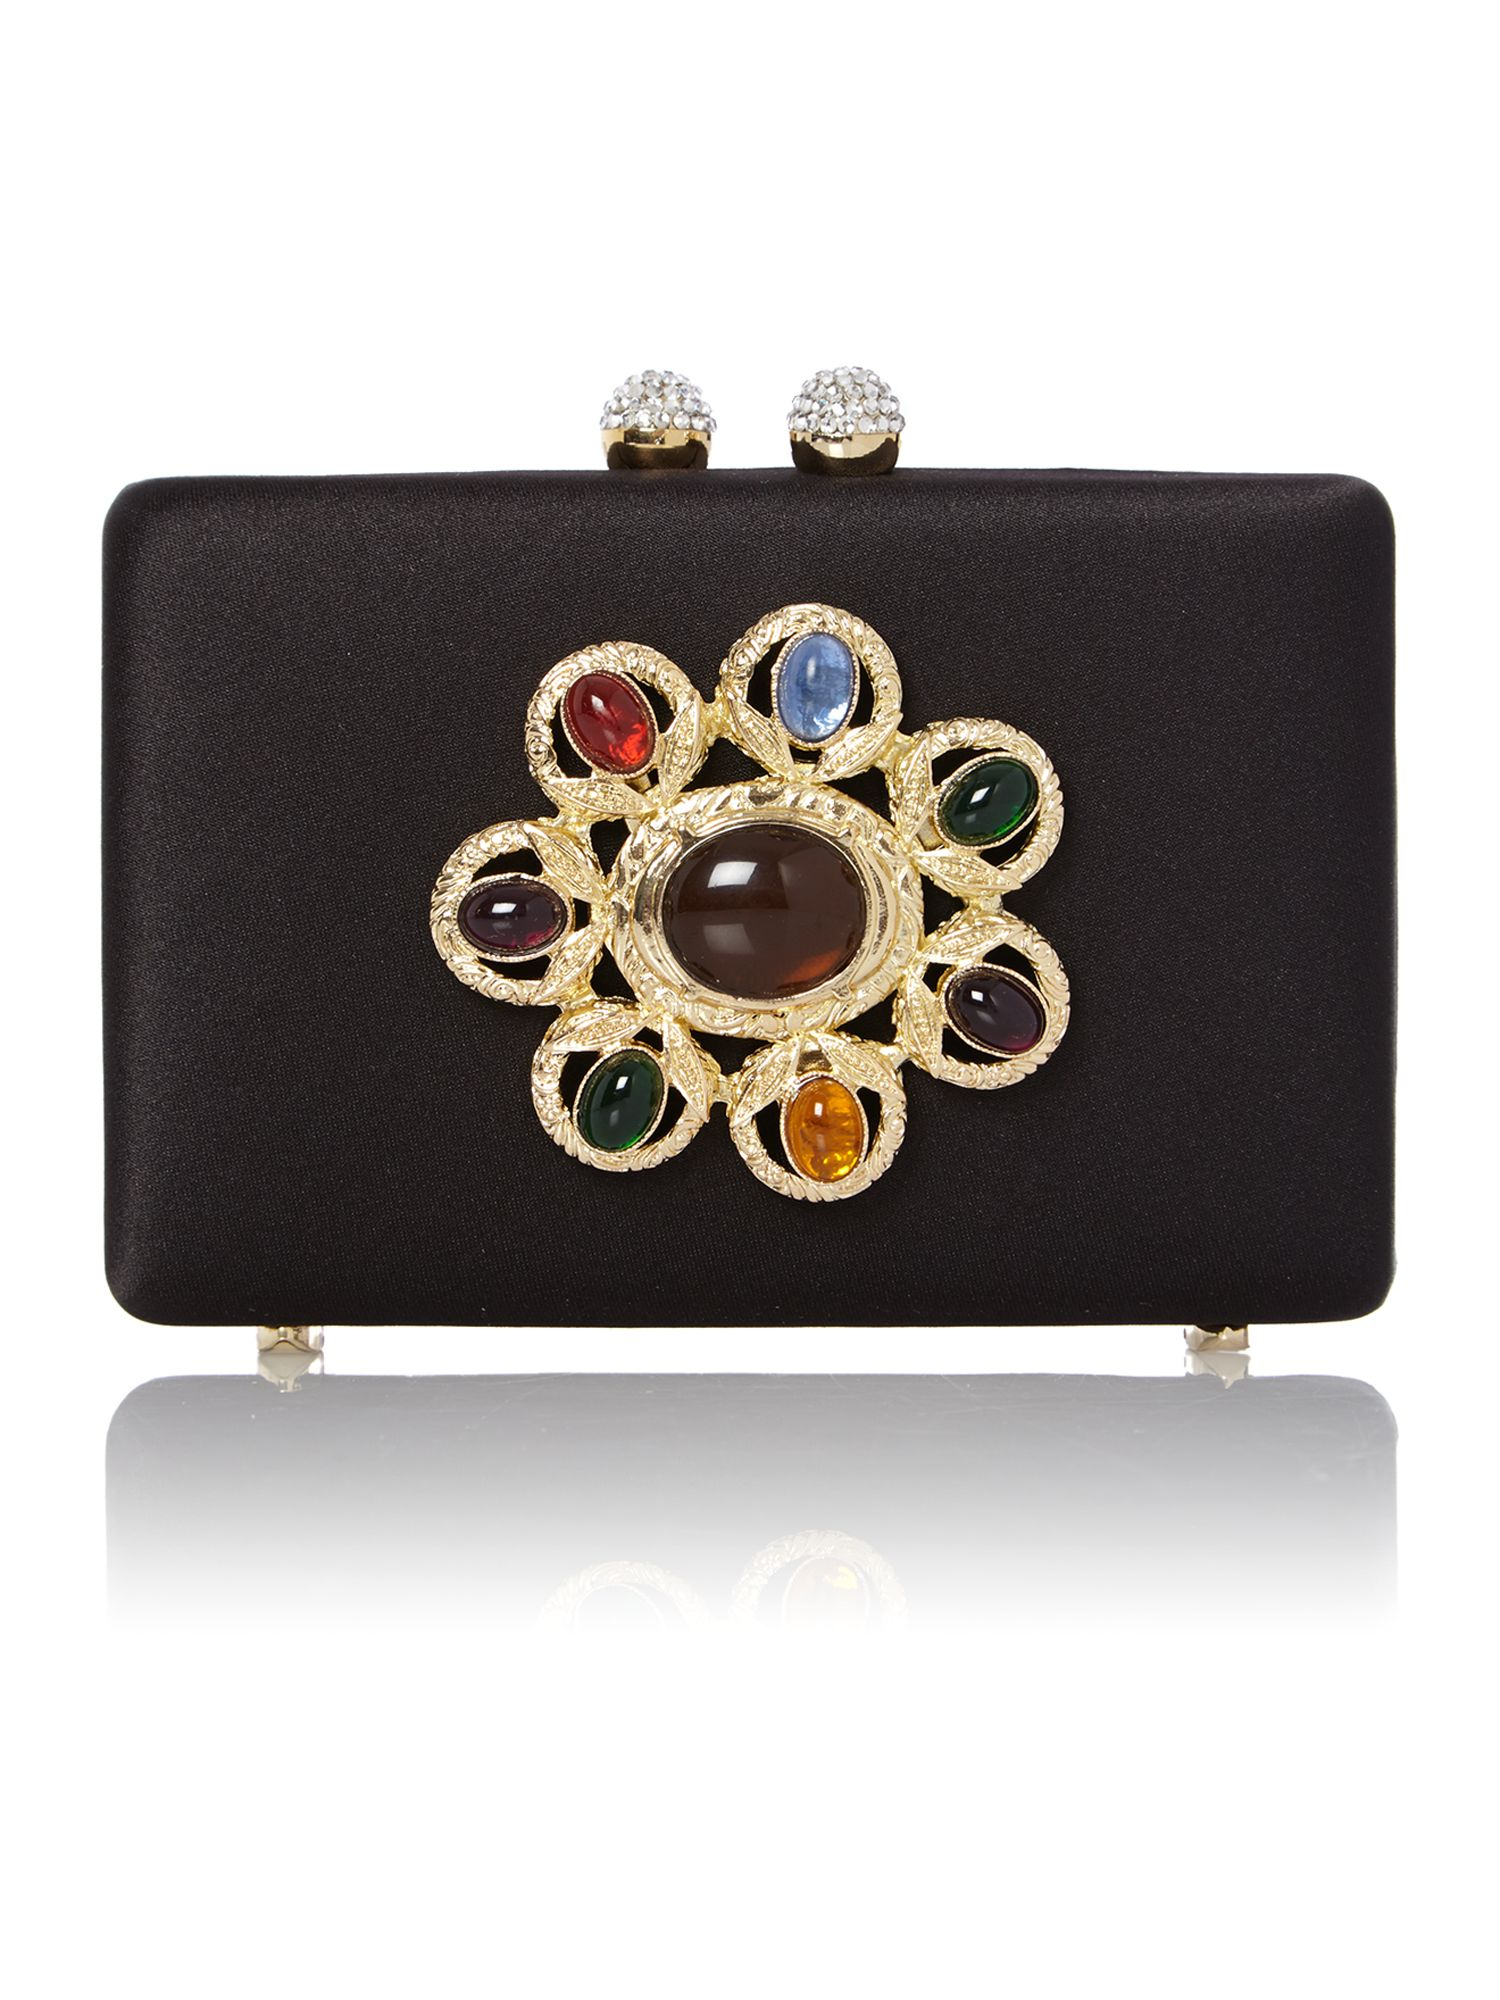 Small black jewel clutch